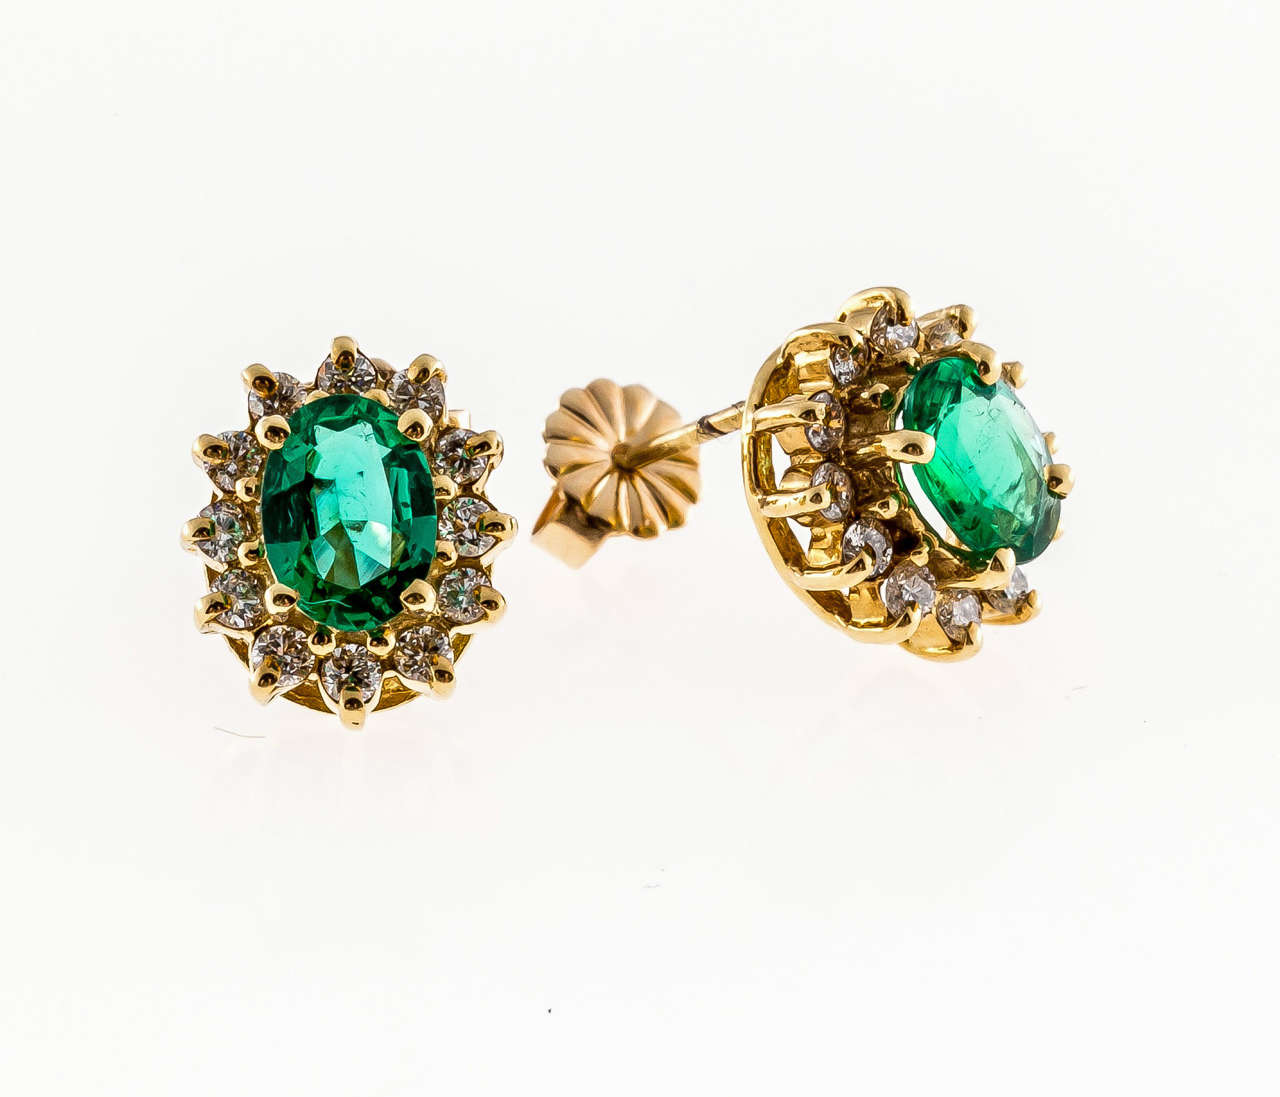 Green Emerald Diamond Yellow Gold Earrings For Sale at 1stdibs